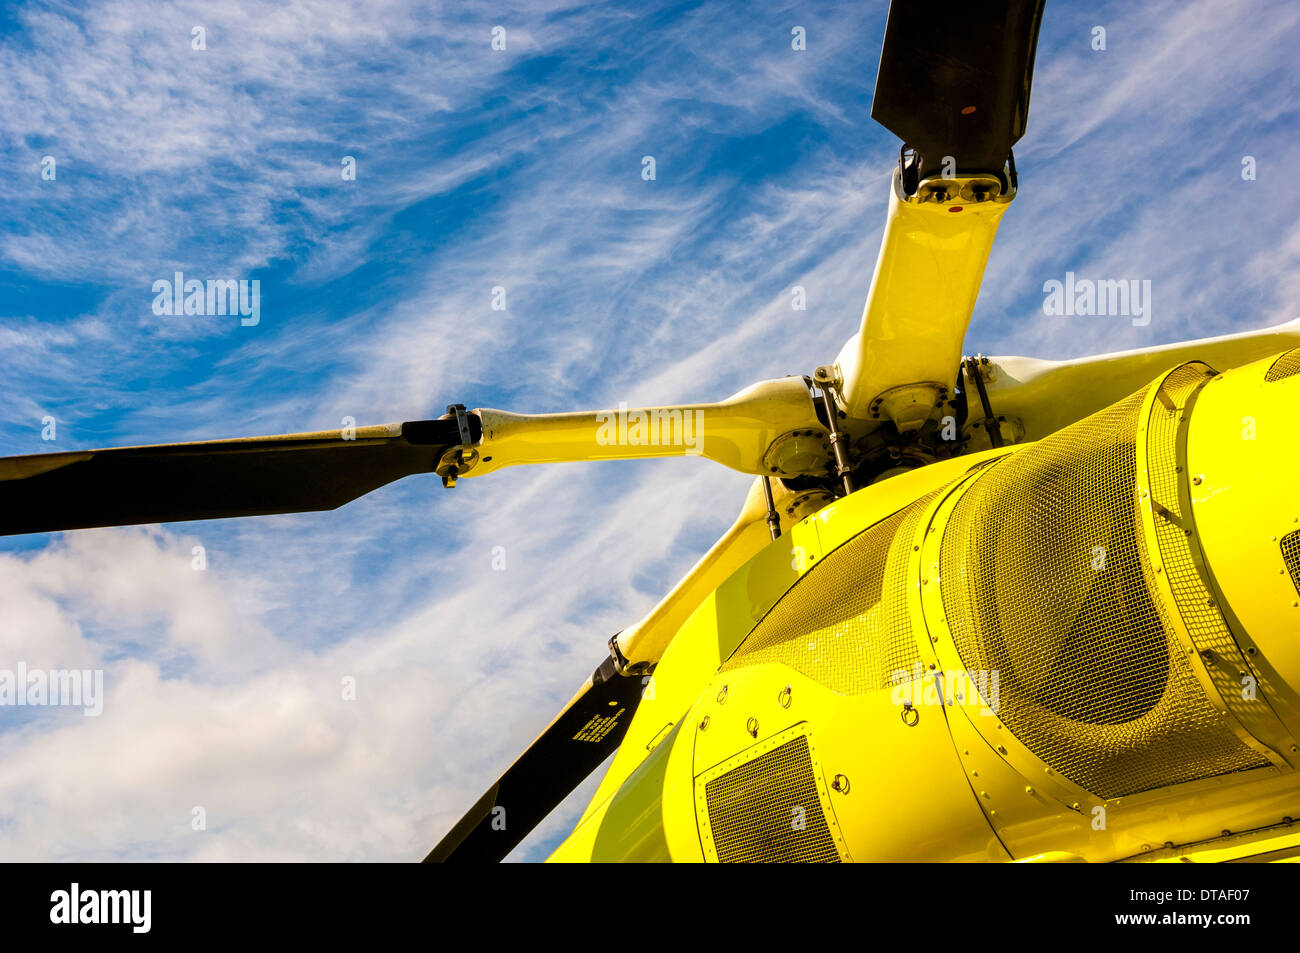 Rotor blades on Yorkshire Air Ambulance helicopter - Stock Image